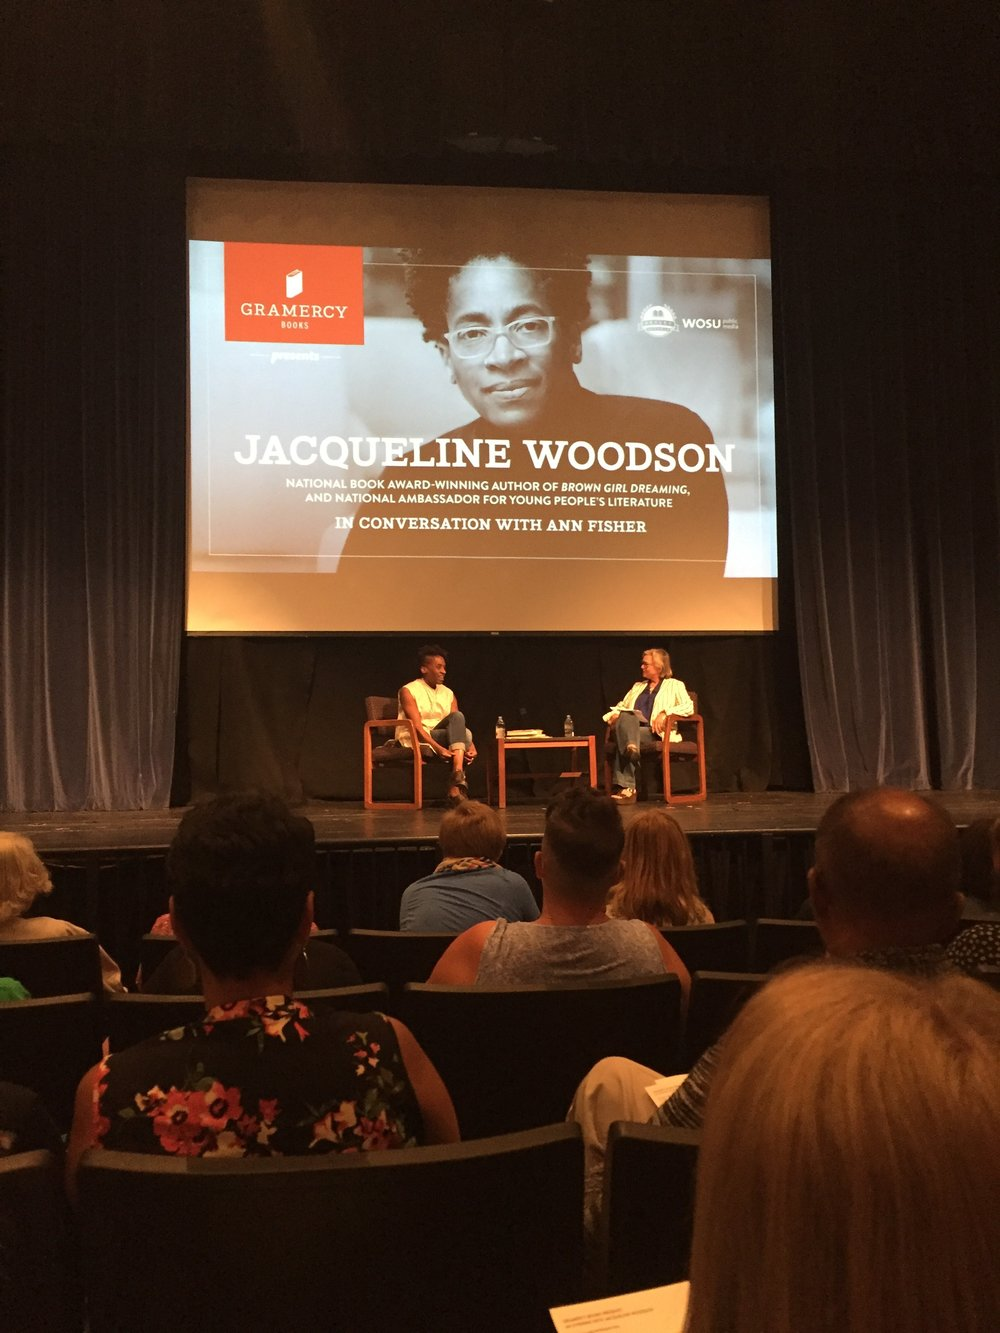 [image description: Photo of the stage Jacqueline Woodson spoke on. I was seated several rows back, so the rows in front of me and the people sitting in them are visible at the bottom of the picture. Onstage, Jacqueline Woodson (a black woman) and the person interviewing her (a white woman; more on her in the next paragraph) are sitting with their chairs angled slightly toward each other but where the audience can still see their faces. Above their heads are royal blue curtains and a big dangling screen with Jacqueline's author photo and copy advertising the event.]